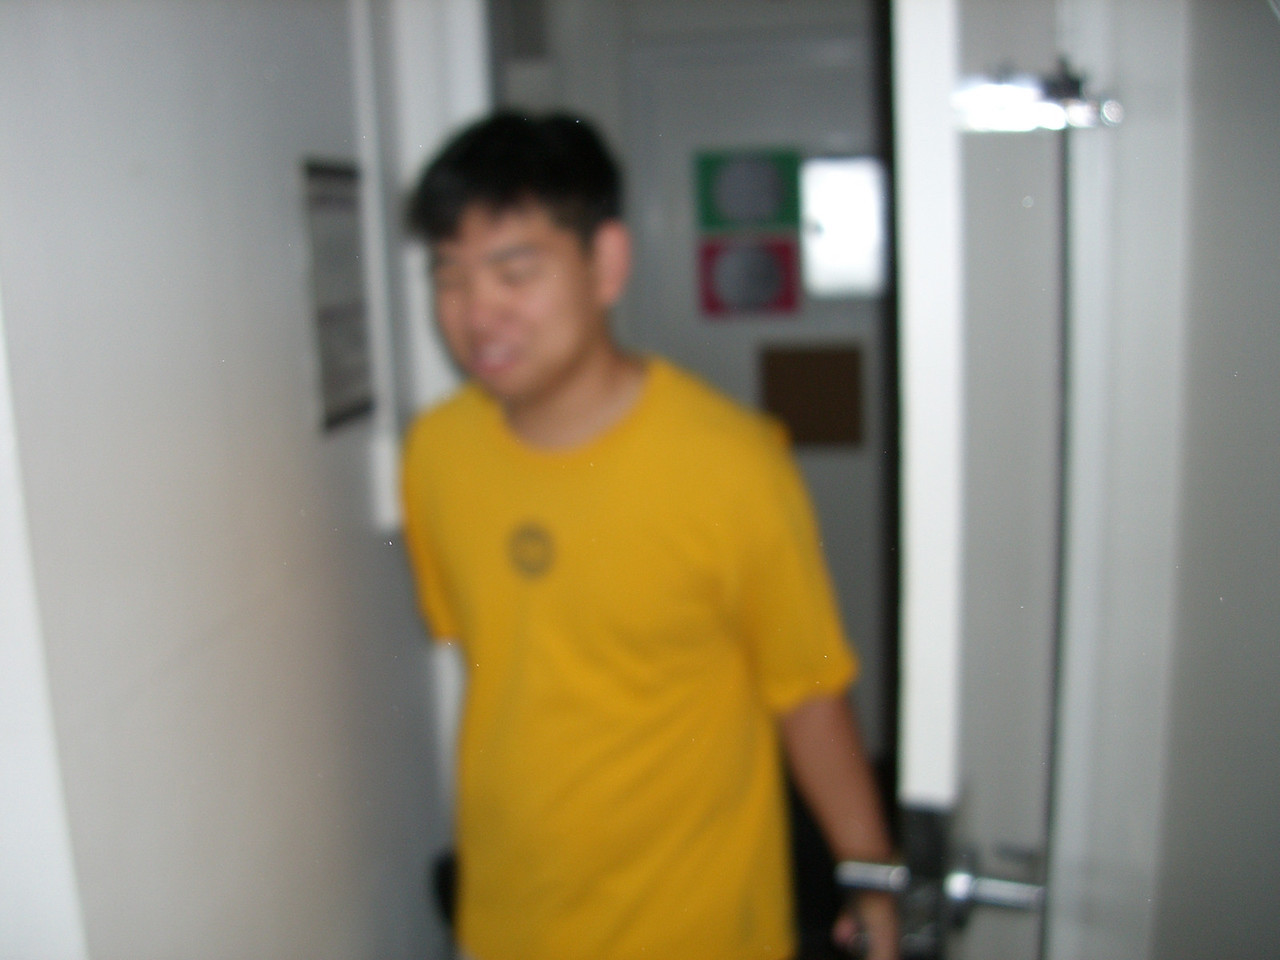 The 8th - David Chiang comes back from laundry - blurry